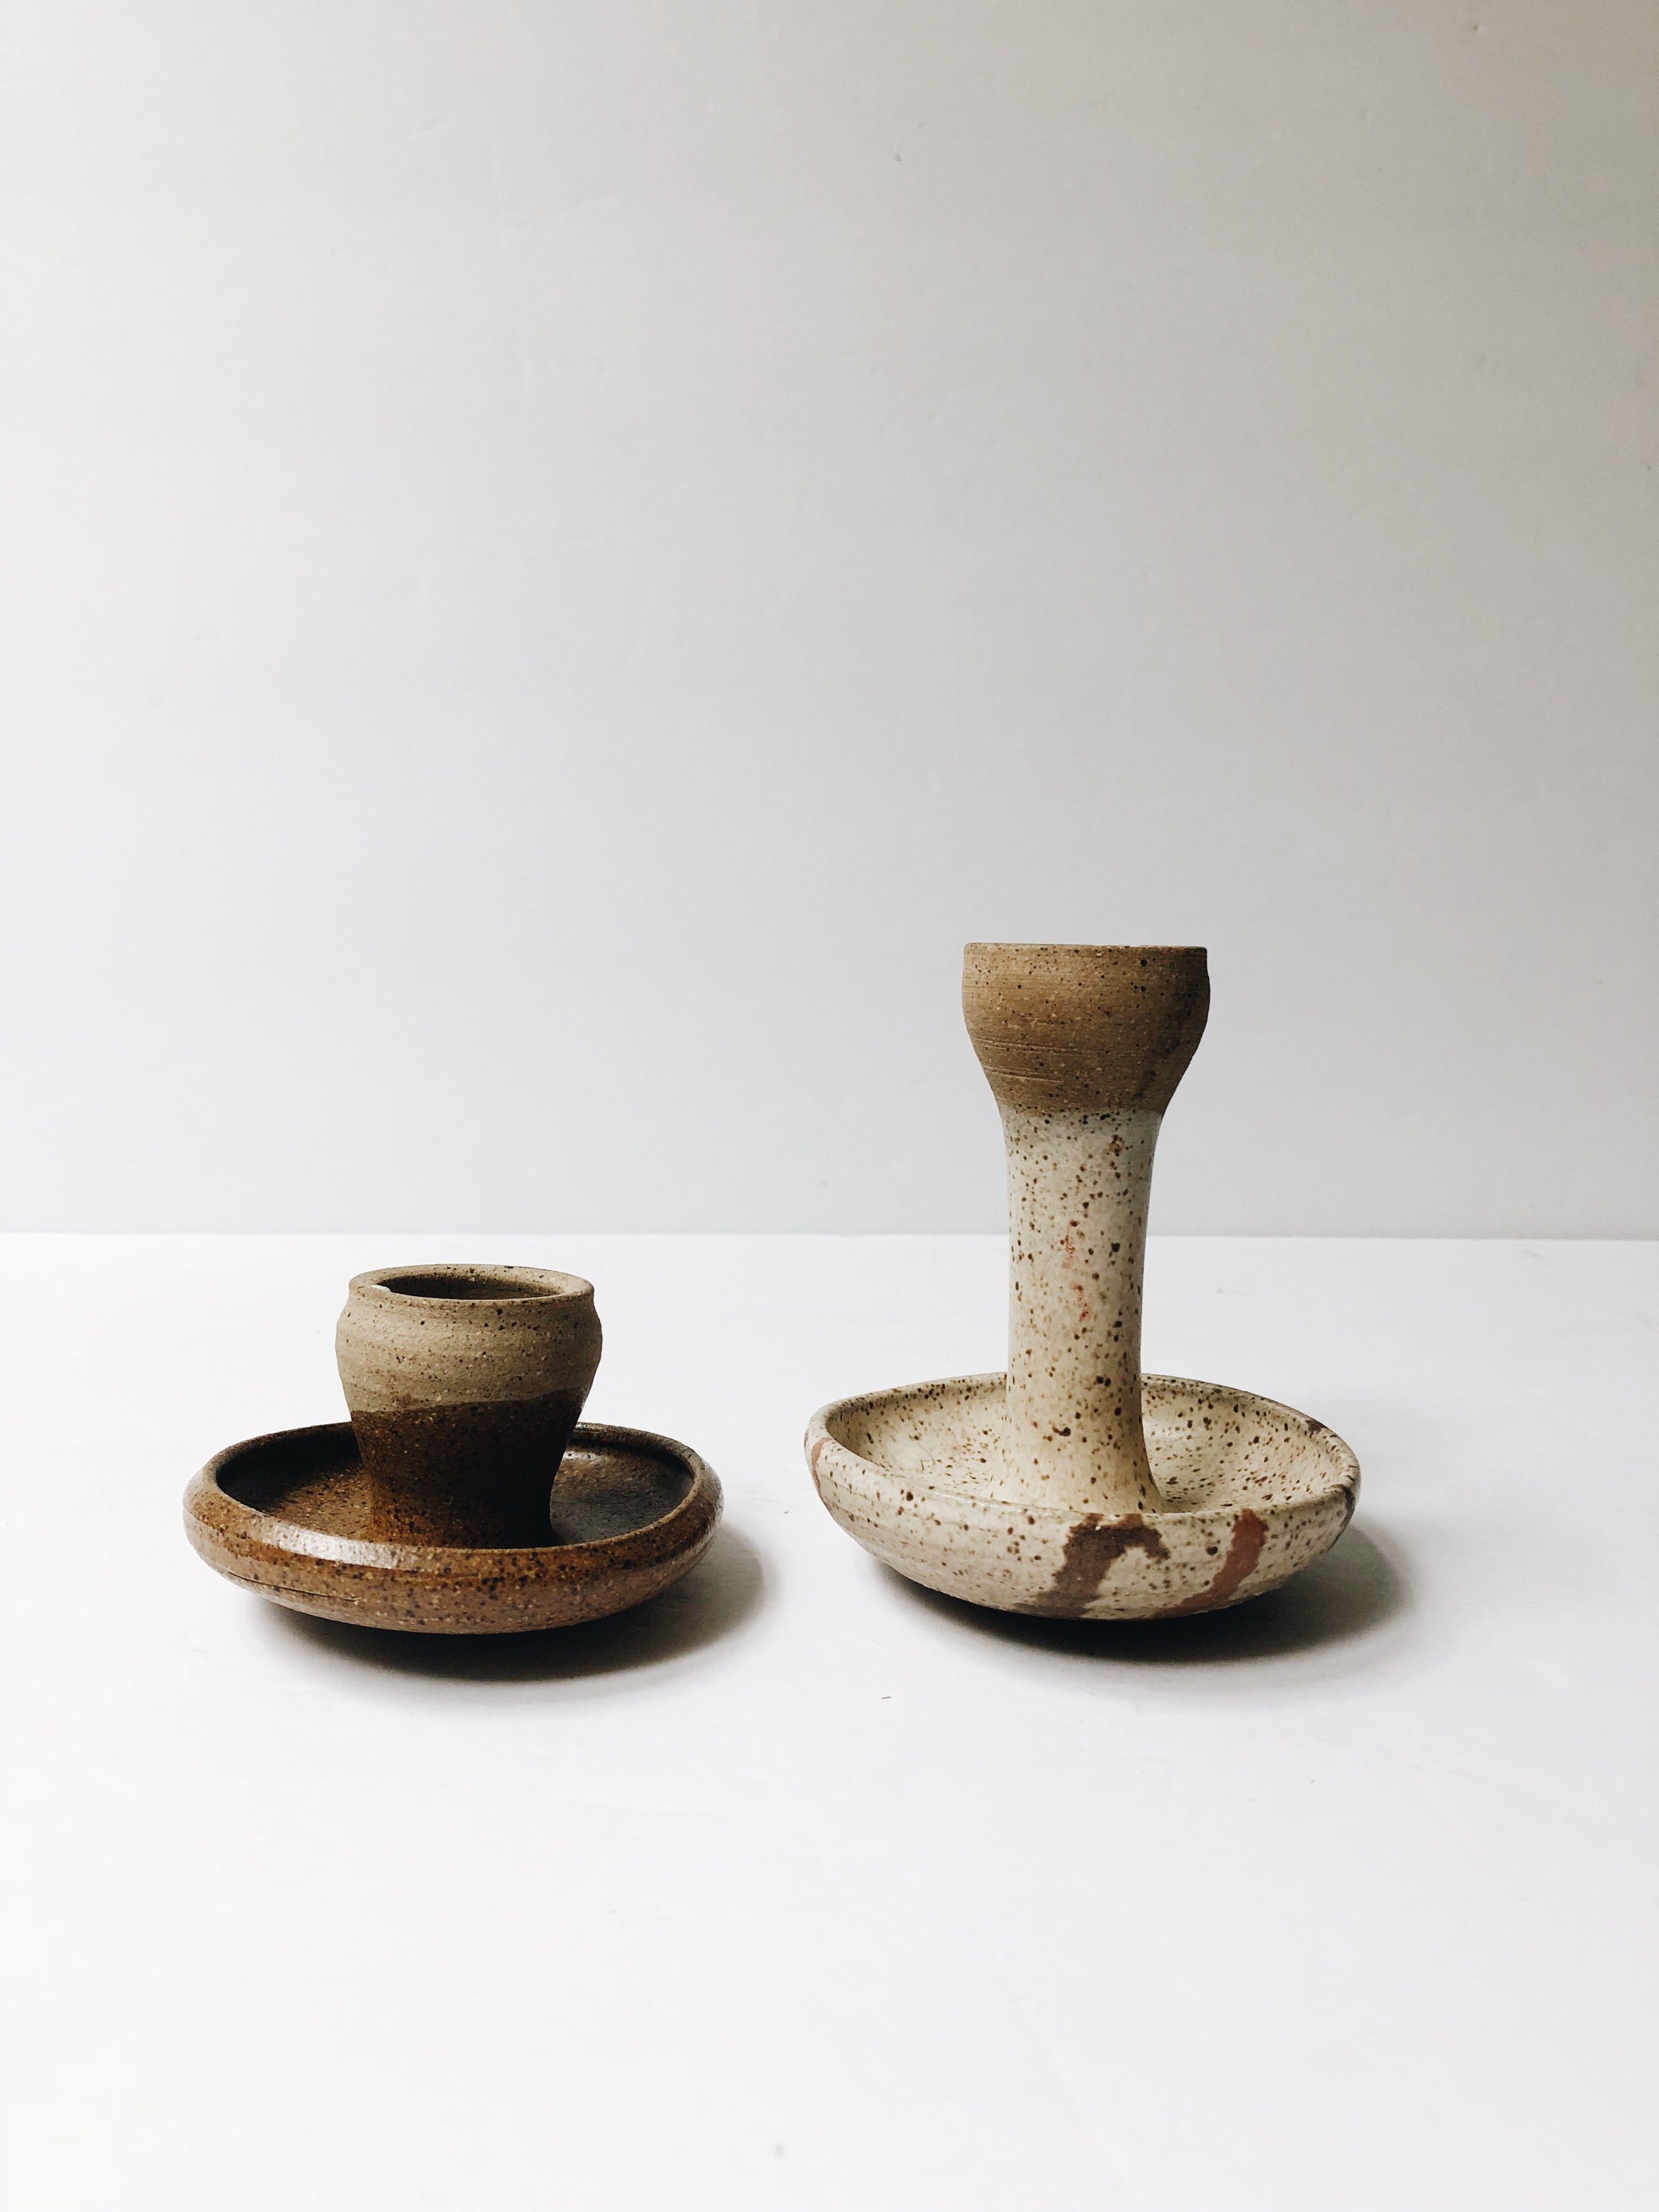 Handmade Ceramic Candlestick Holders